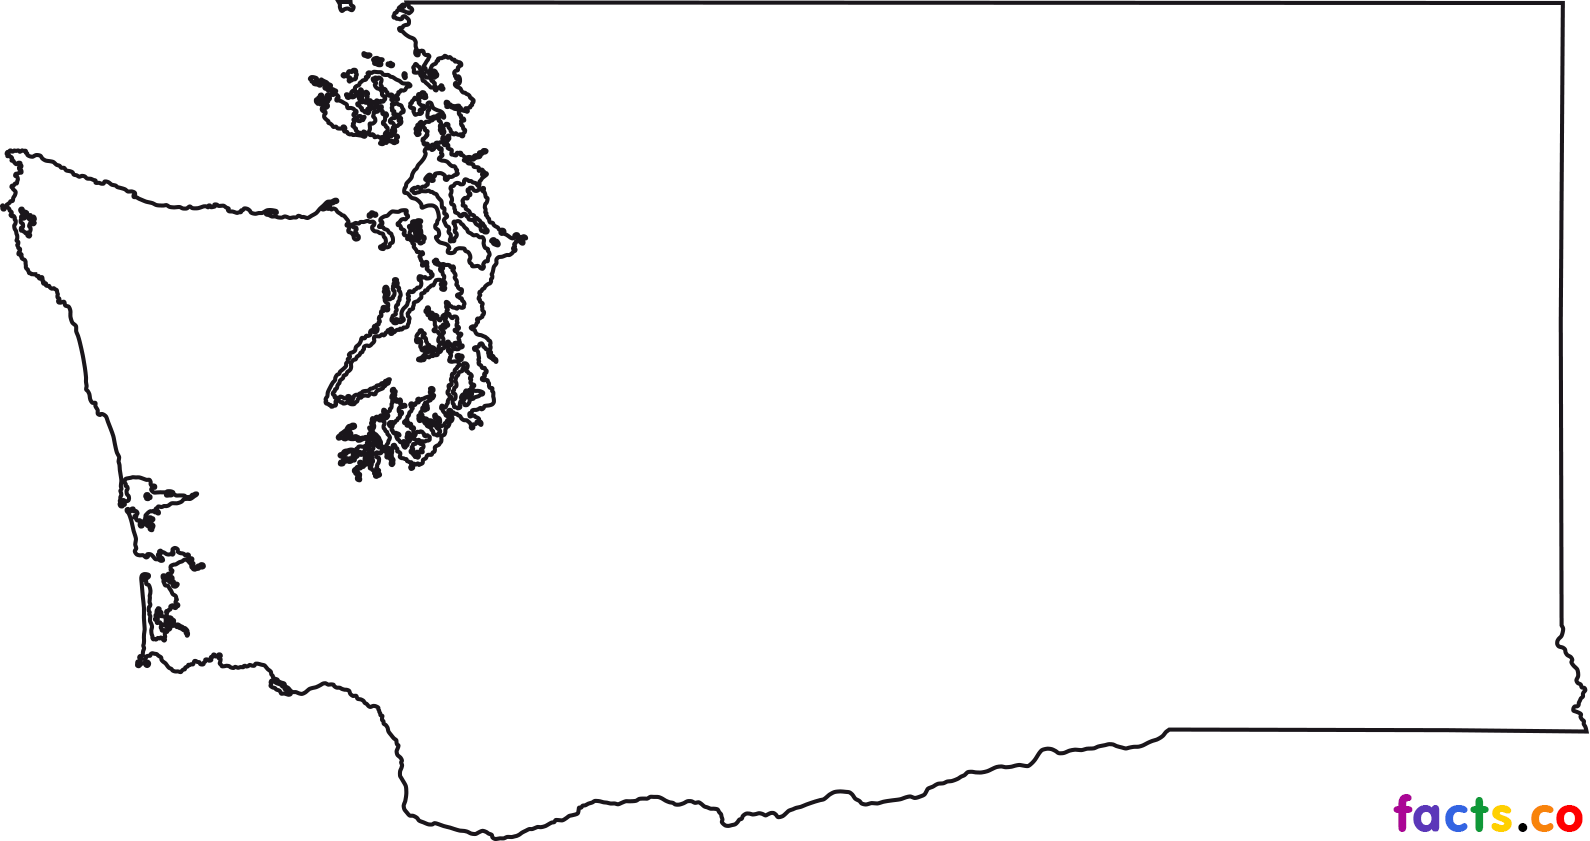 Washington state outline clipart free image library Download Free png Washington state outline png 2 » PNG Image - DLPNG.com image library